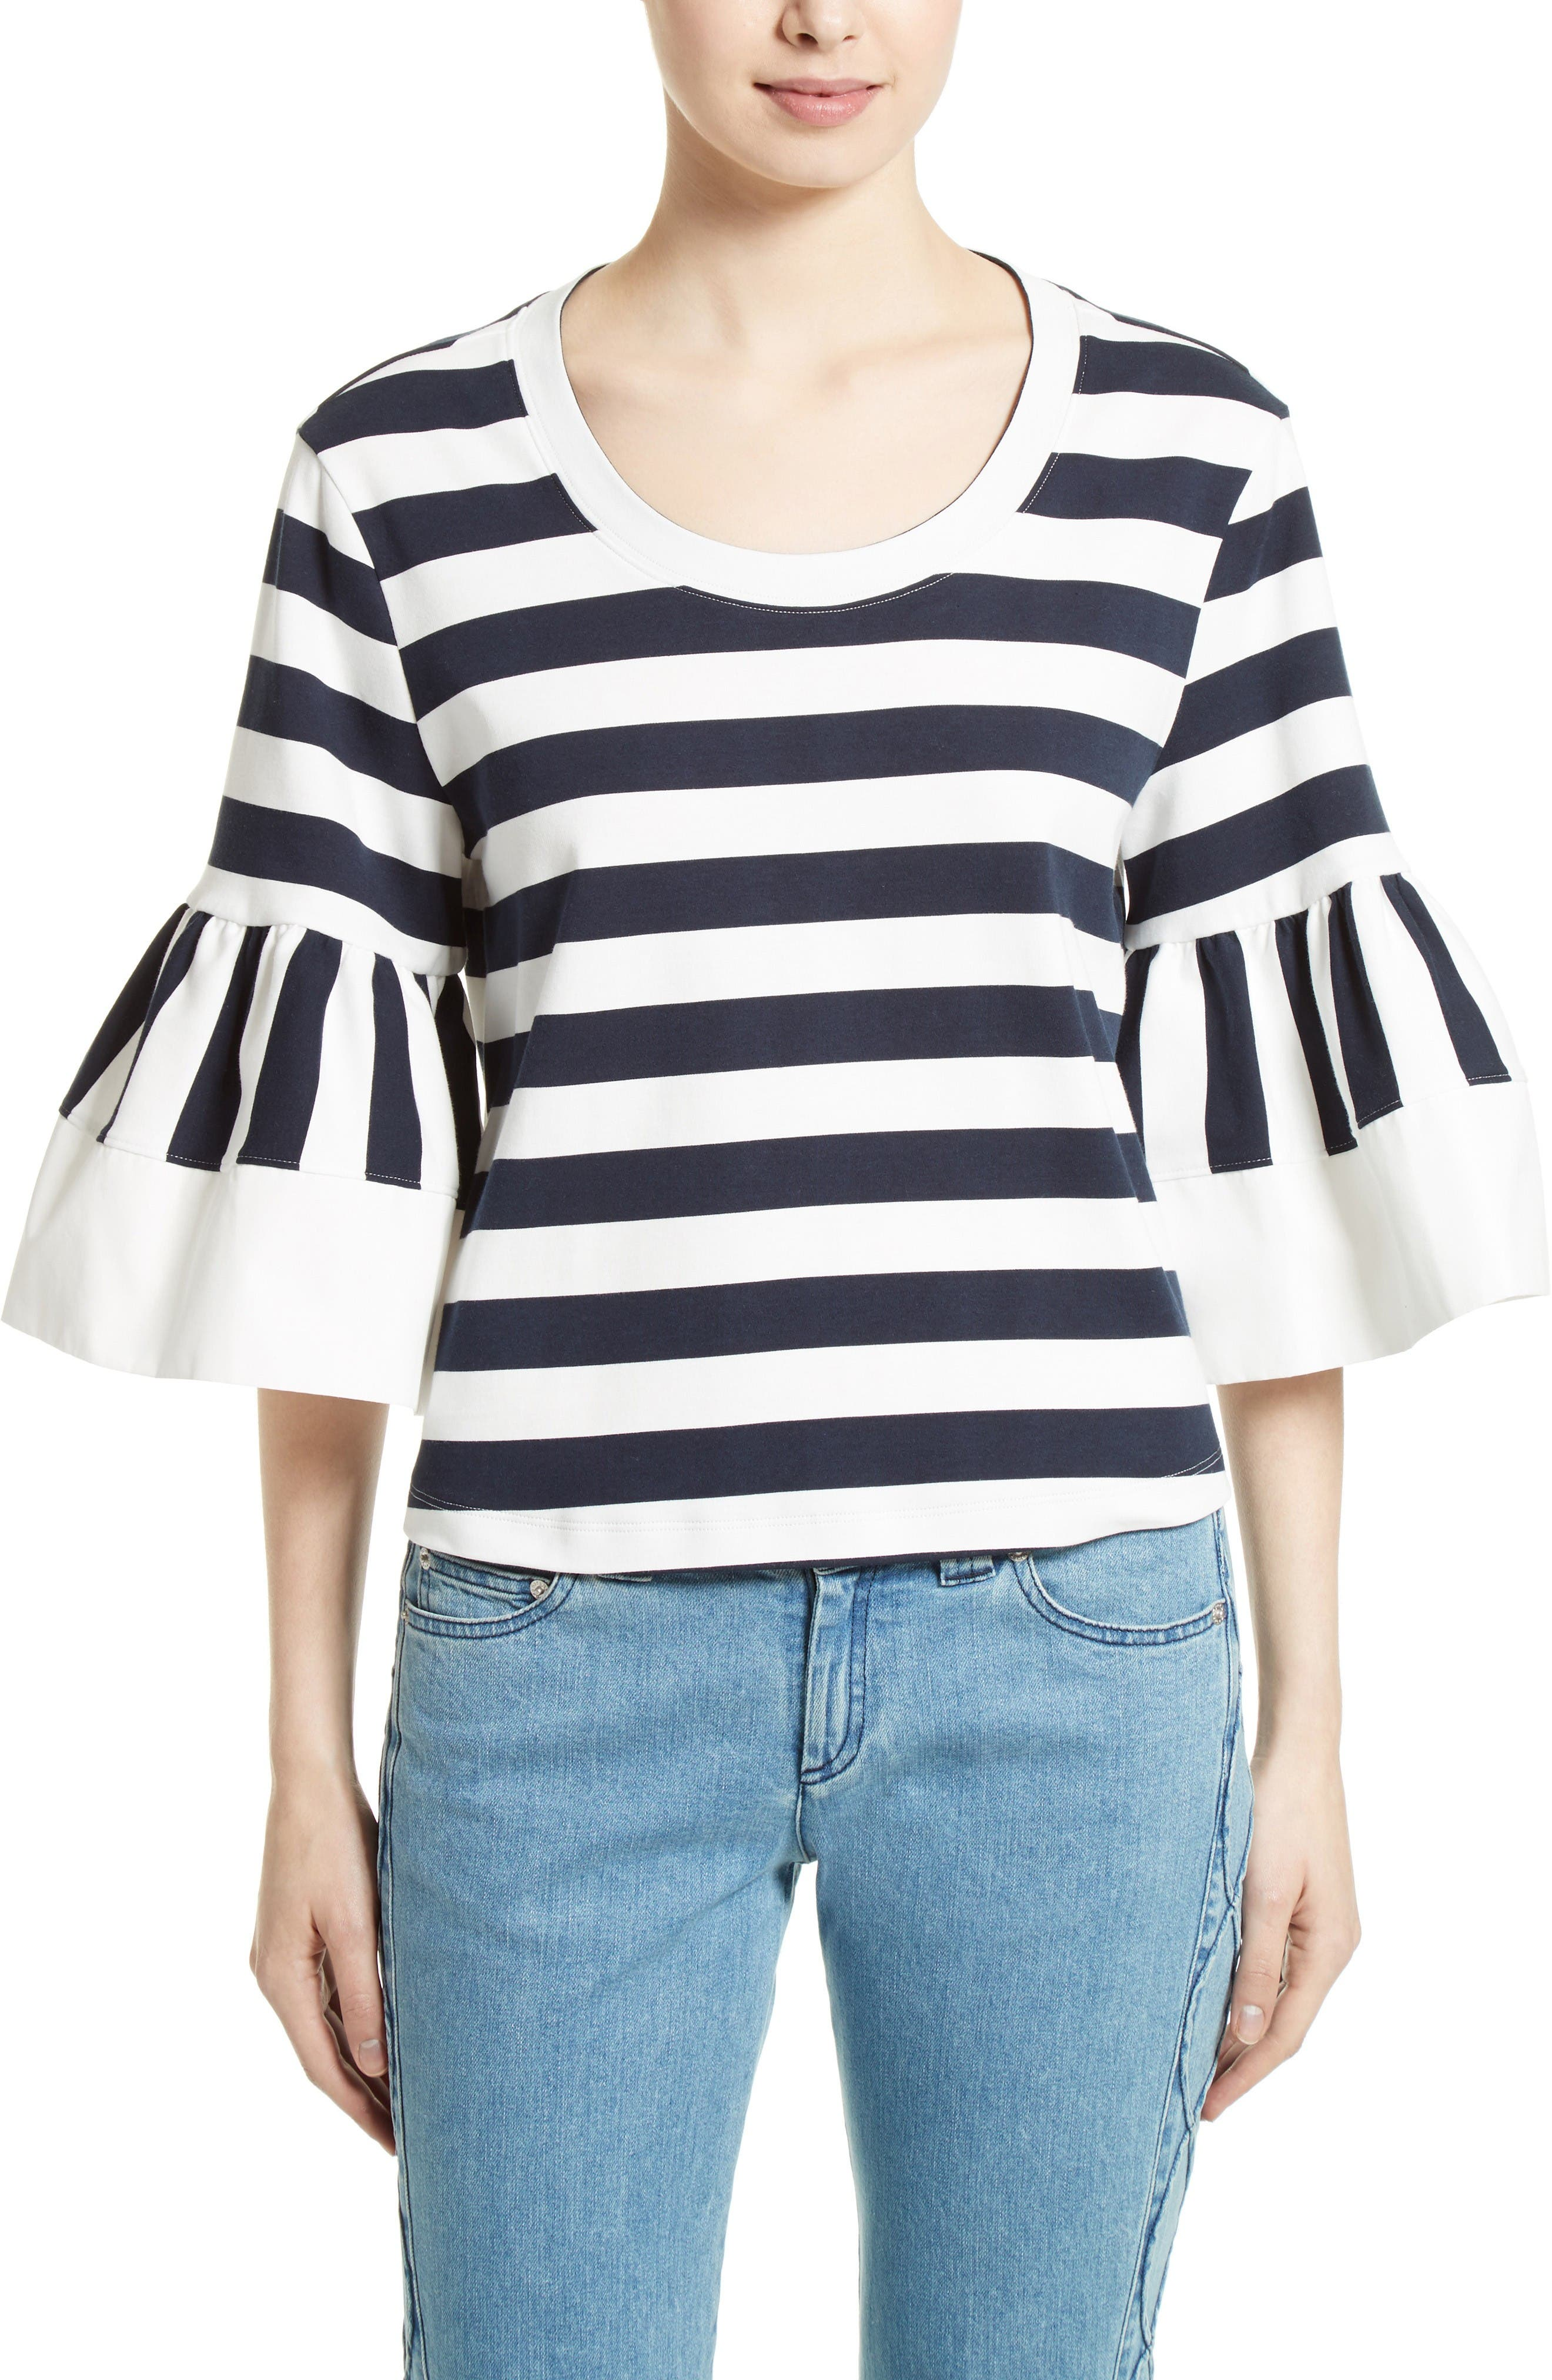 Main Image - See by Chloé Stripe Jersey Bell Sleeve Top (Nordstrom Exclusive)